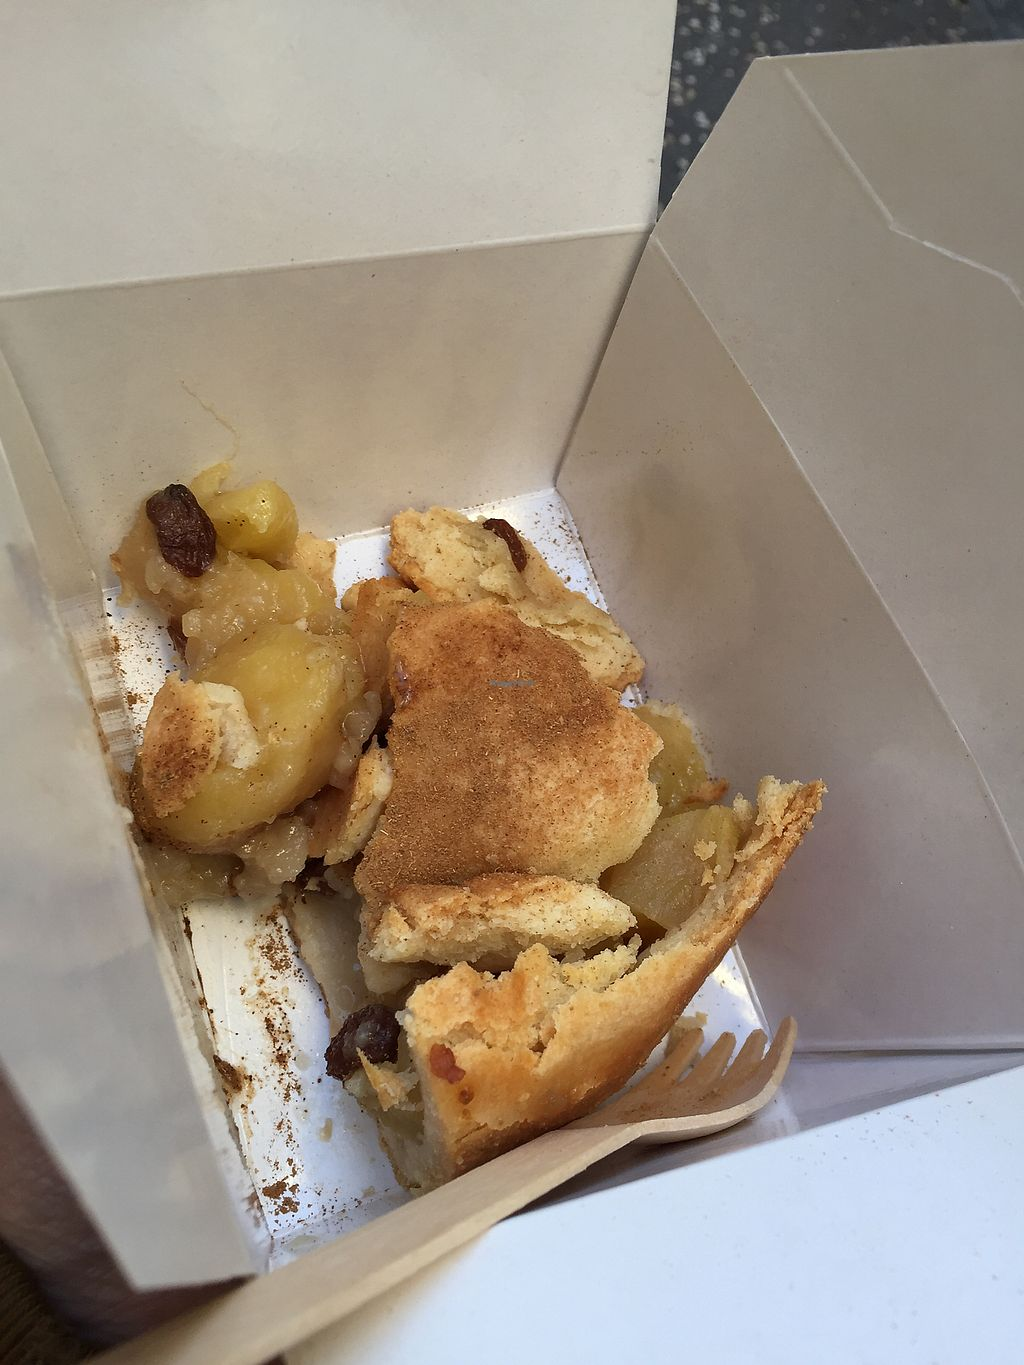 """Photo of Quinoa Bar Vegetaria  by <a href=""""/members/profile/Jameskille"""">Jameskille</a> <br/>Apple pie takeaway!  <br/> October 10, 2017  - <a href='/contact/abuse/image/40631/313876'>Report</a>"""